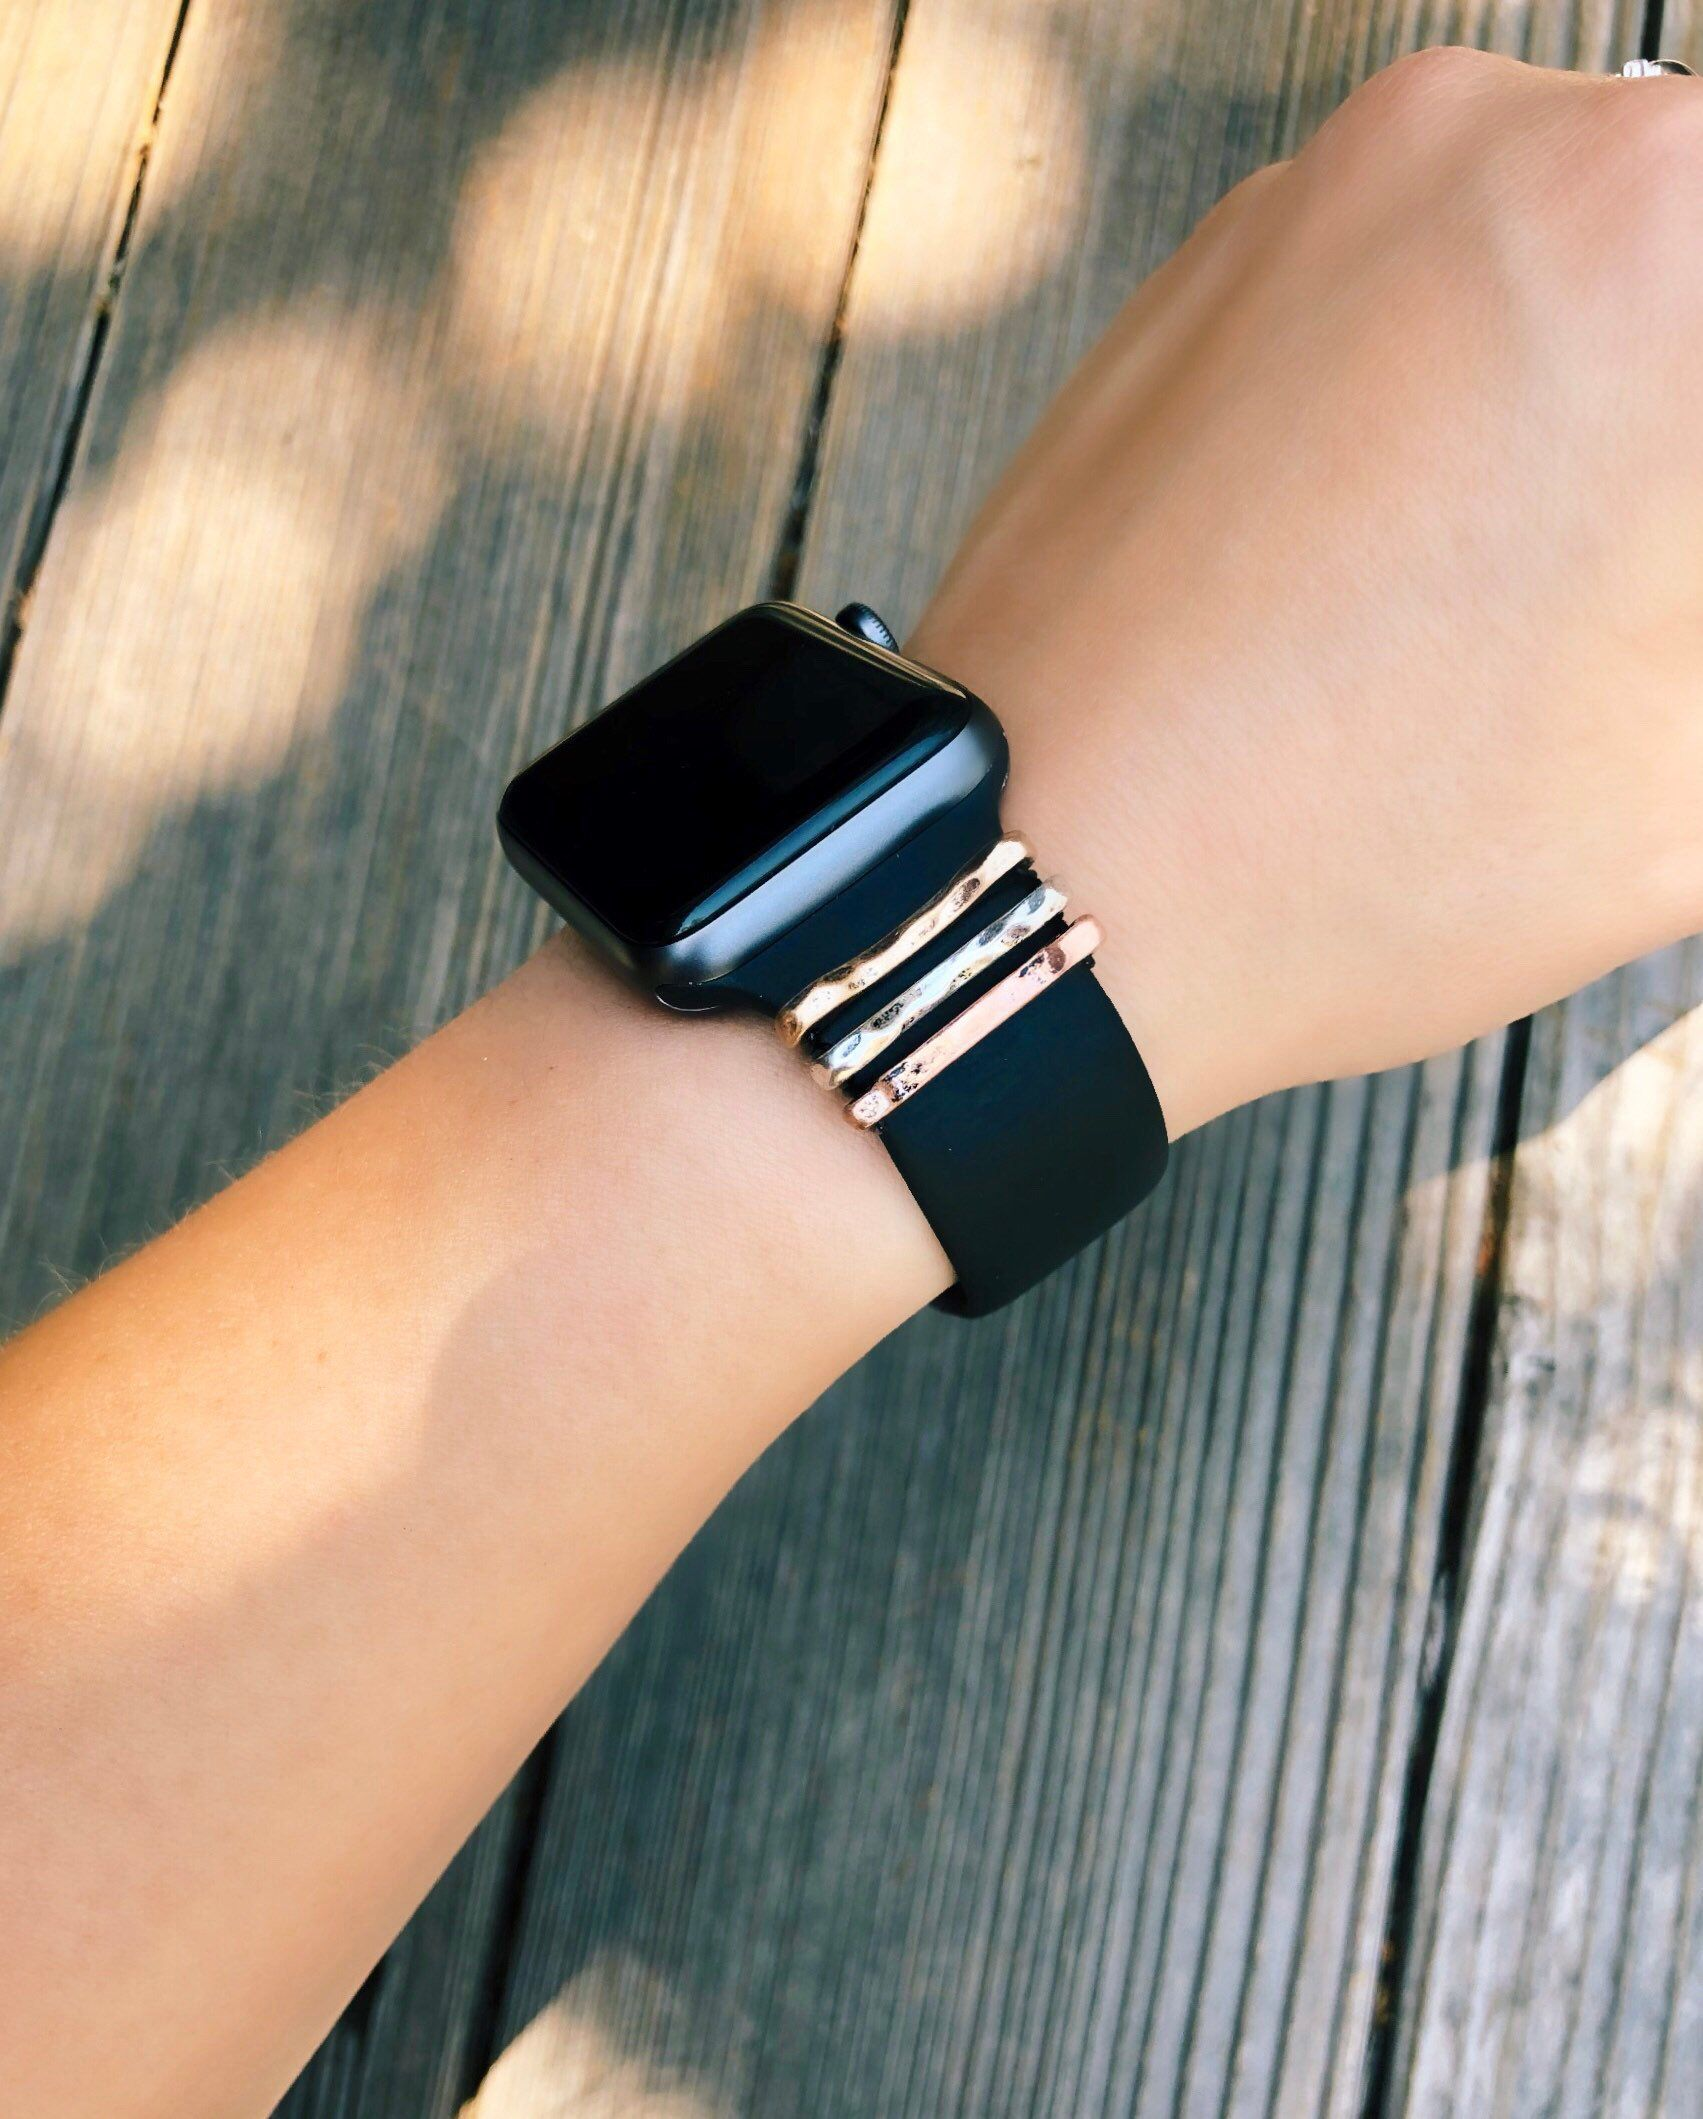 Apple Watch Band Accessories Apple Watch Bling Apple Watch Accessories Apple Watch Charm Apple Watch Accessories Apple Watch Bands Women Apple Watch Fashion